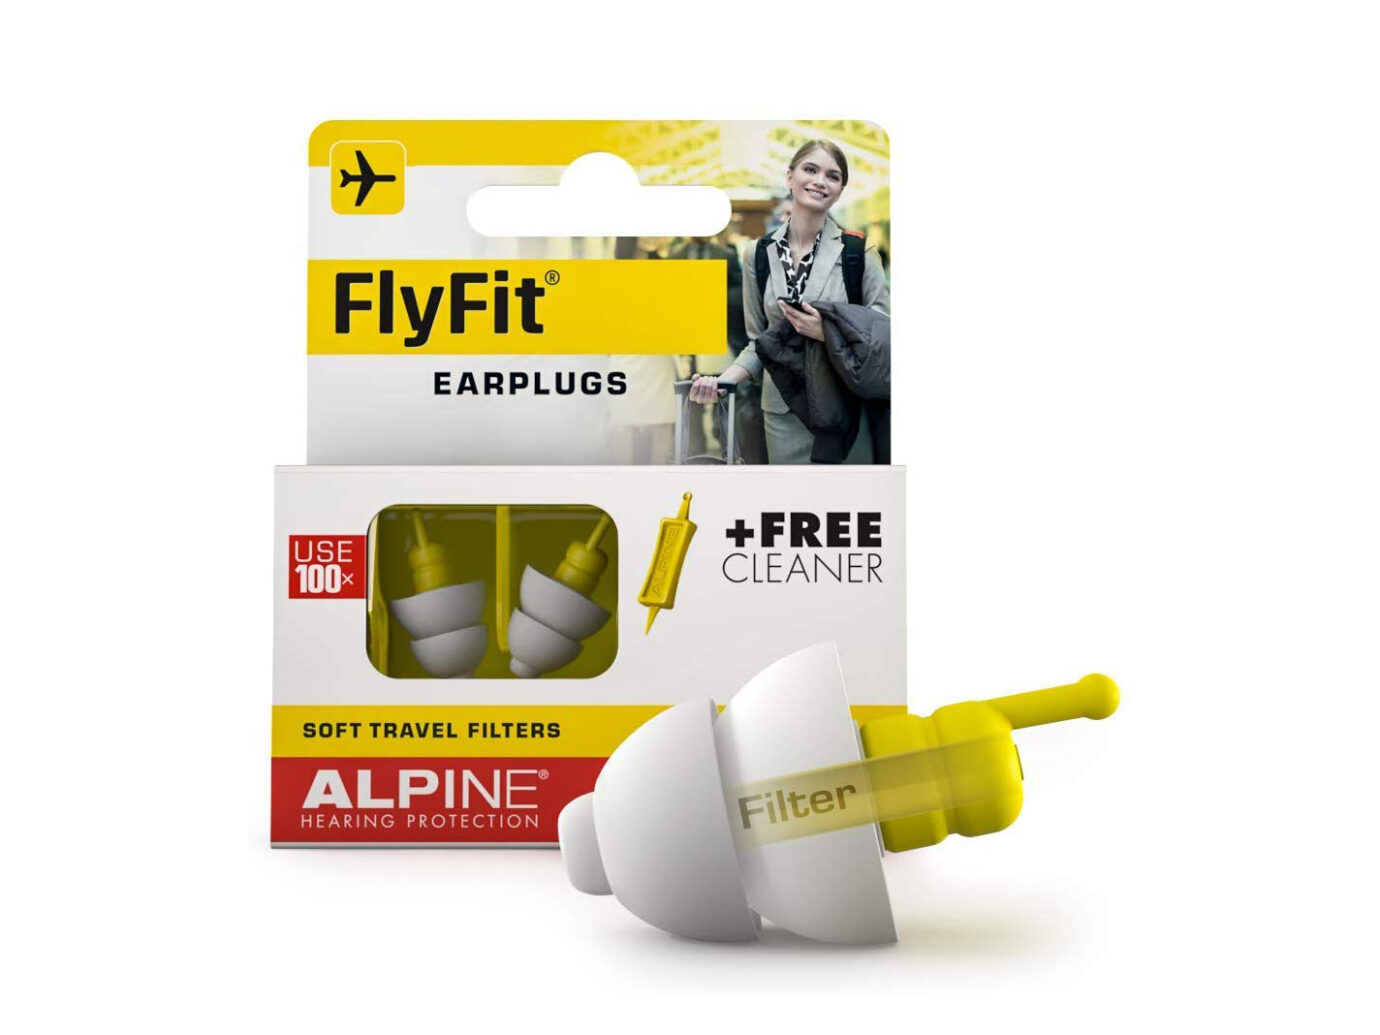 Alpine Hearing Protection FlyFit Airplane Ear Plugs